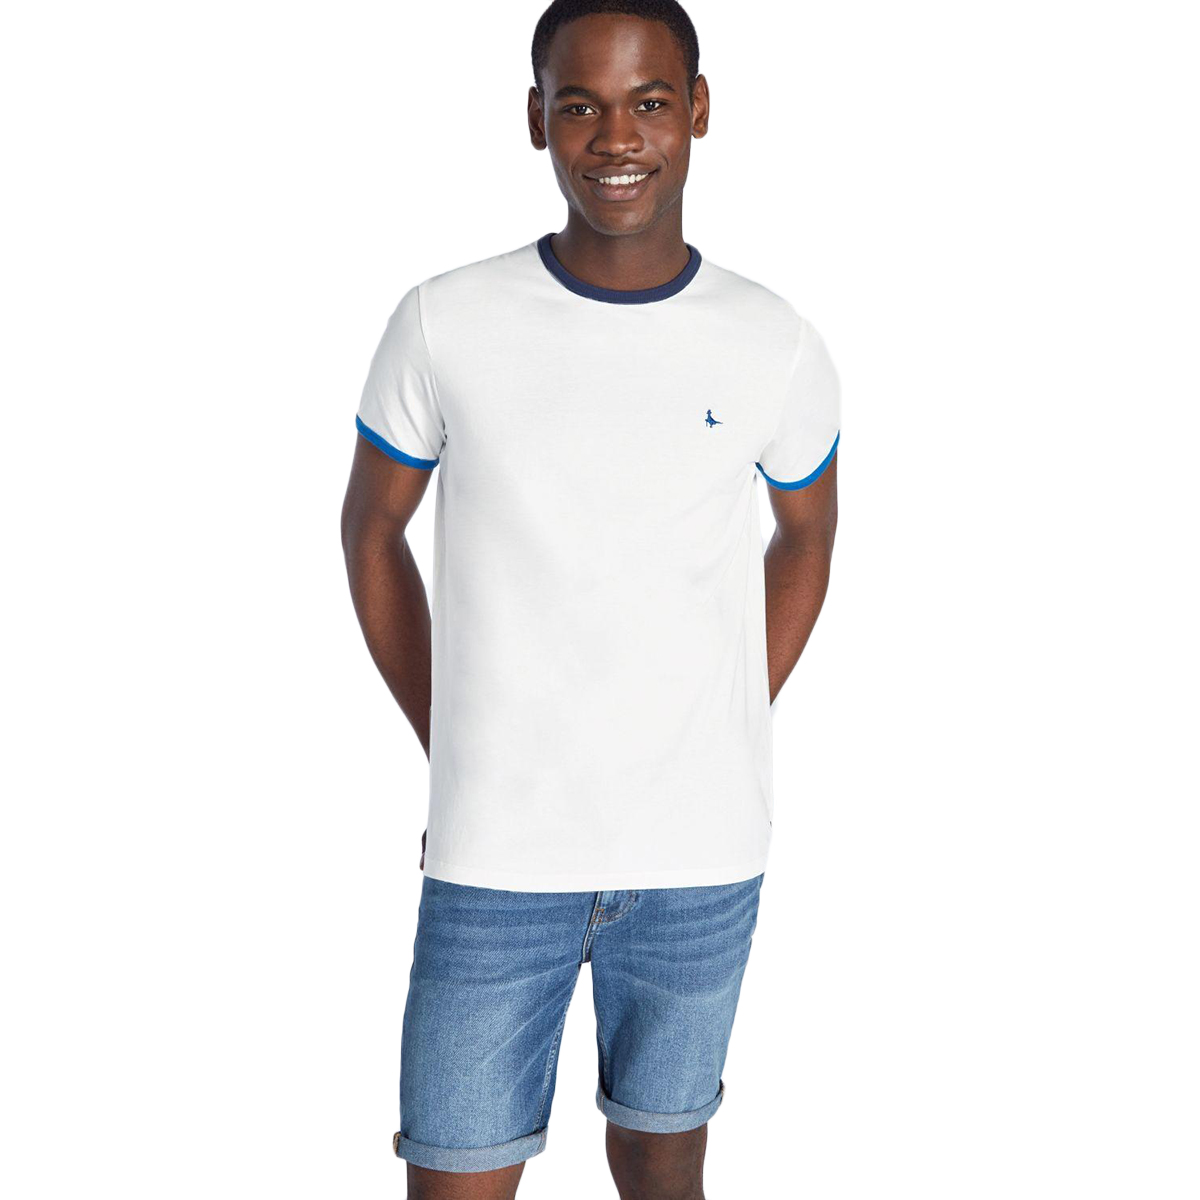 Jack Wills Men's Chilton Ringer T-Shirt - White, L